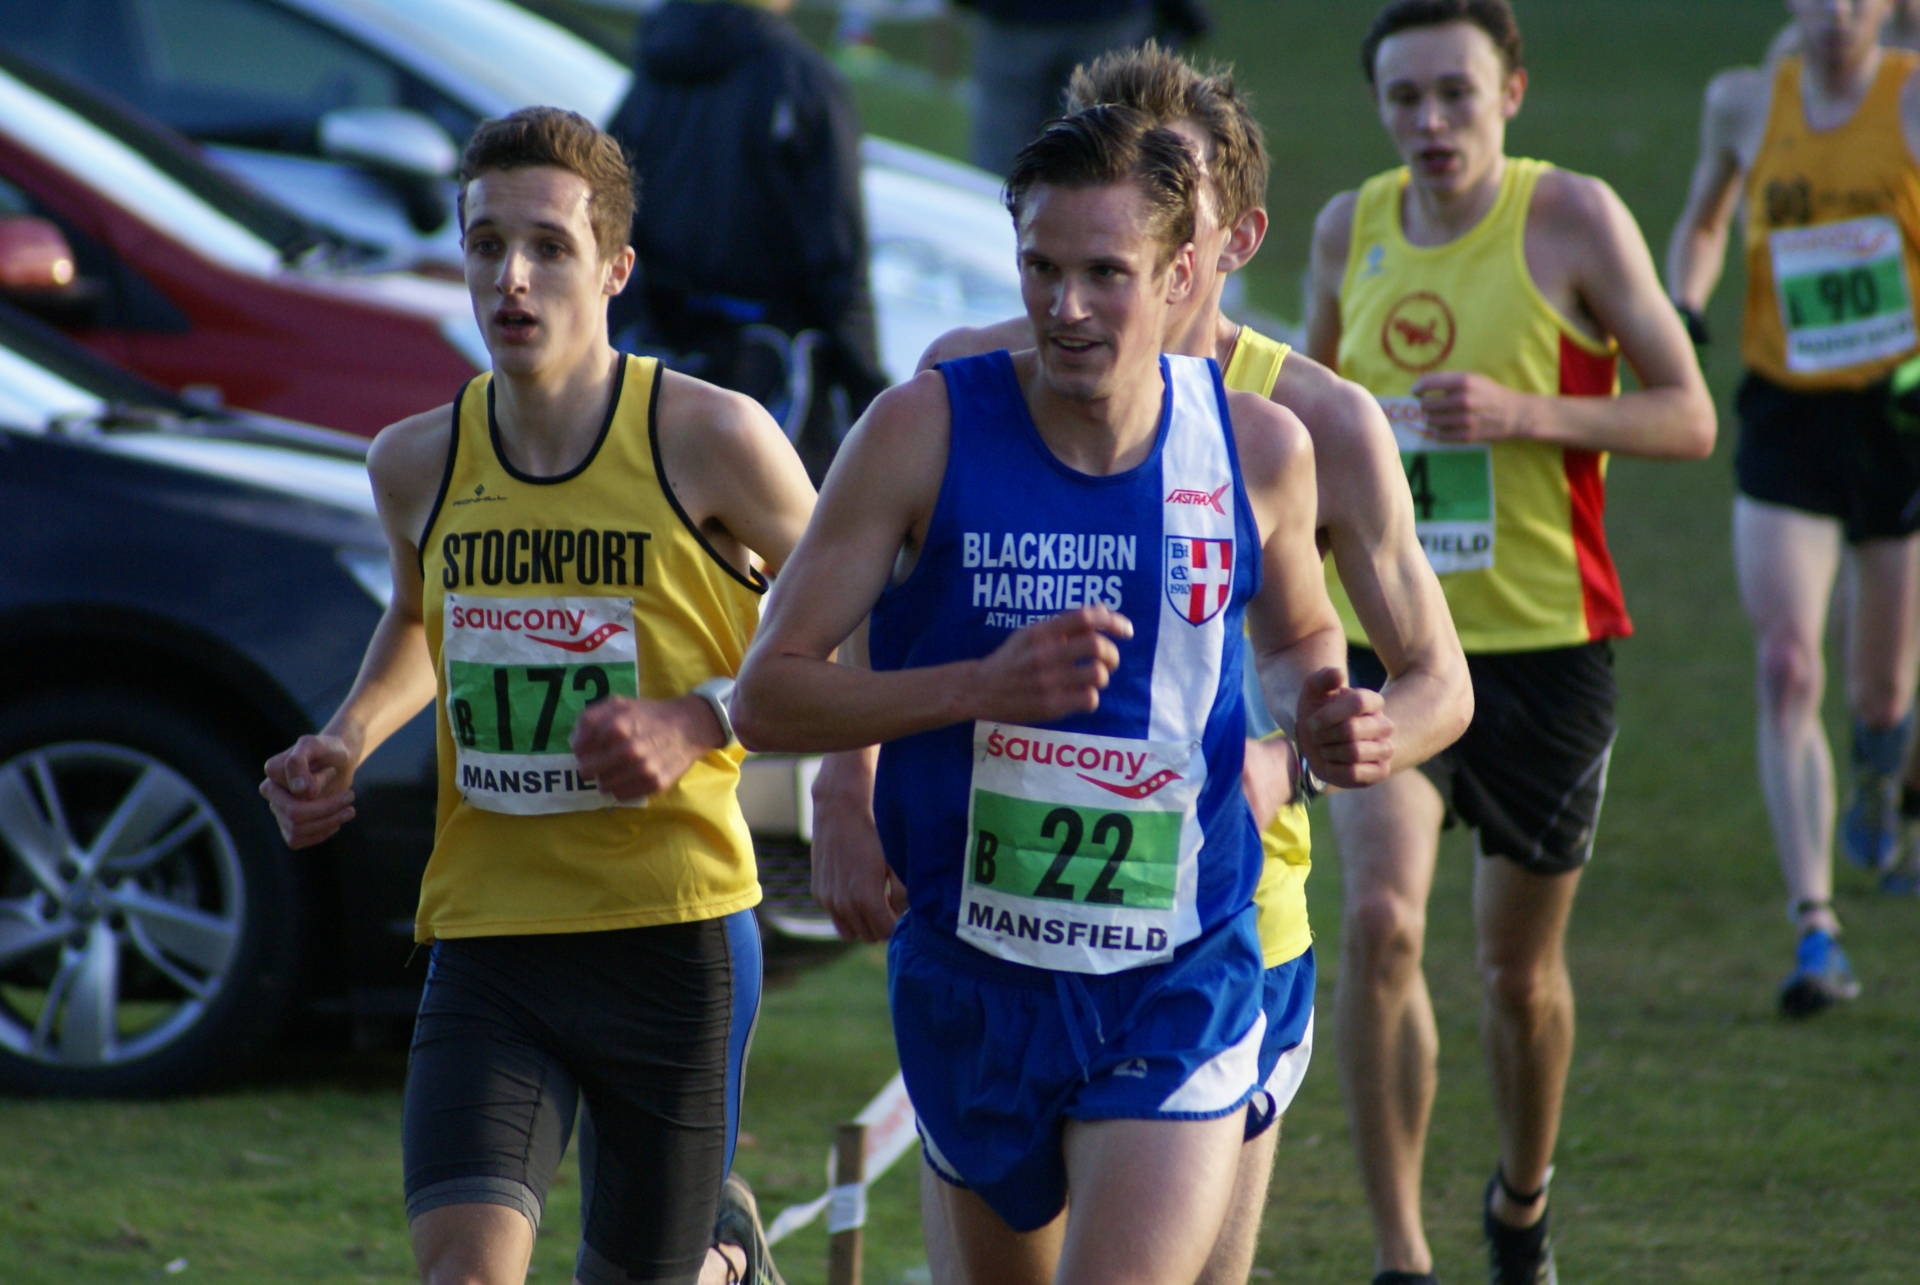 2014 National Cross Country Relays at Mansfield – London Colleges League – Dublin Marathon